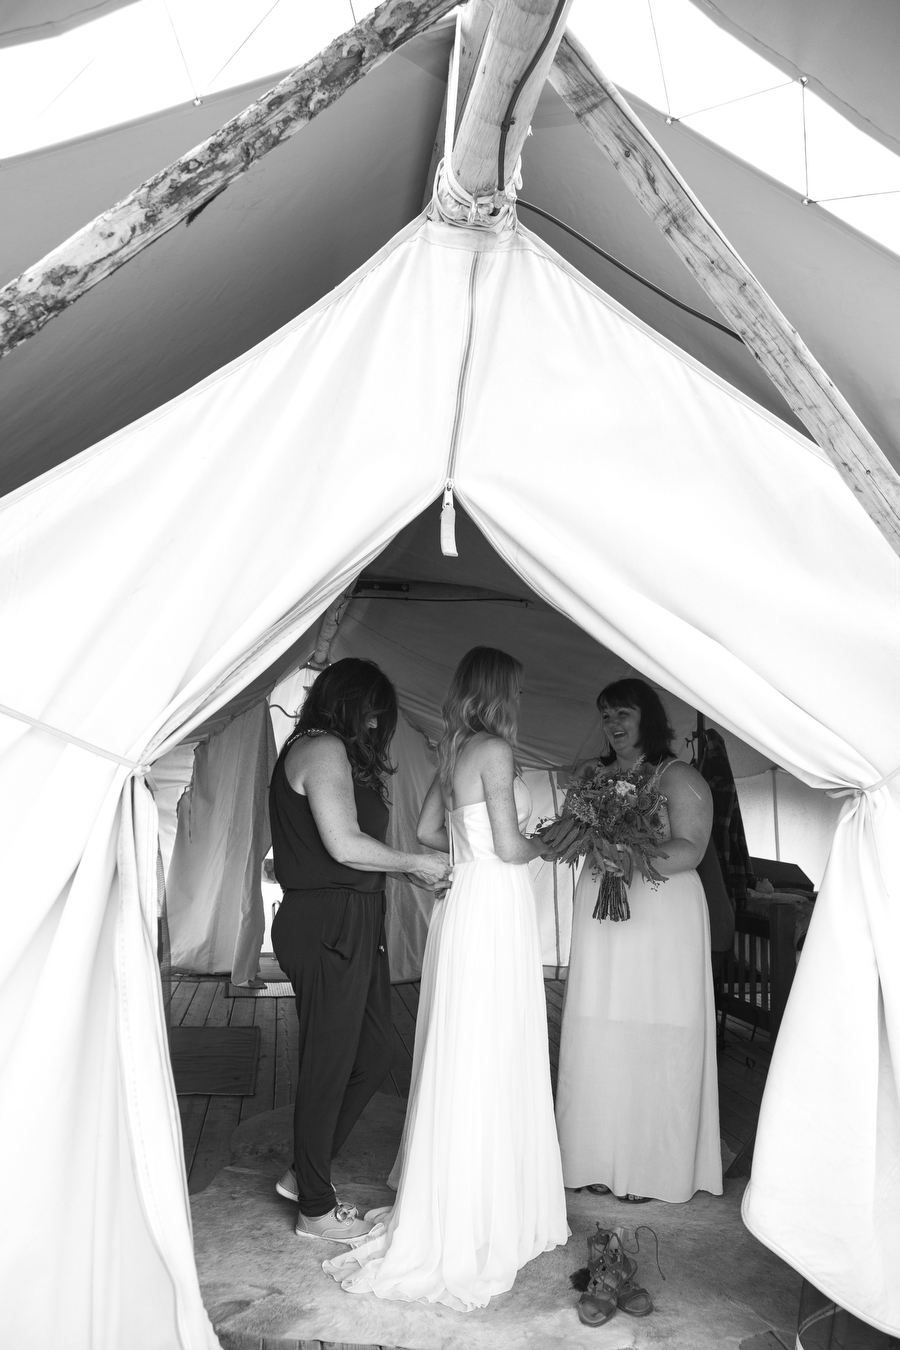 MARIACORONAPHOTOGRAPHY_MOAB_WEDDING_028.JPG